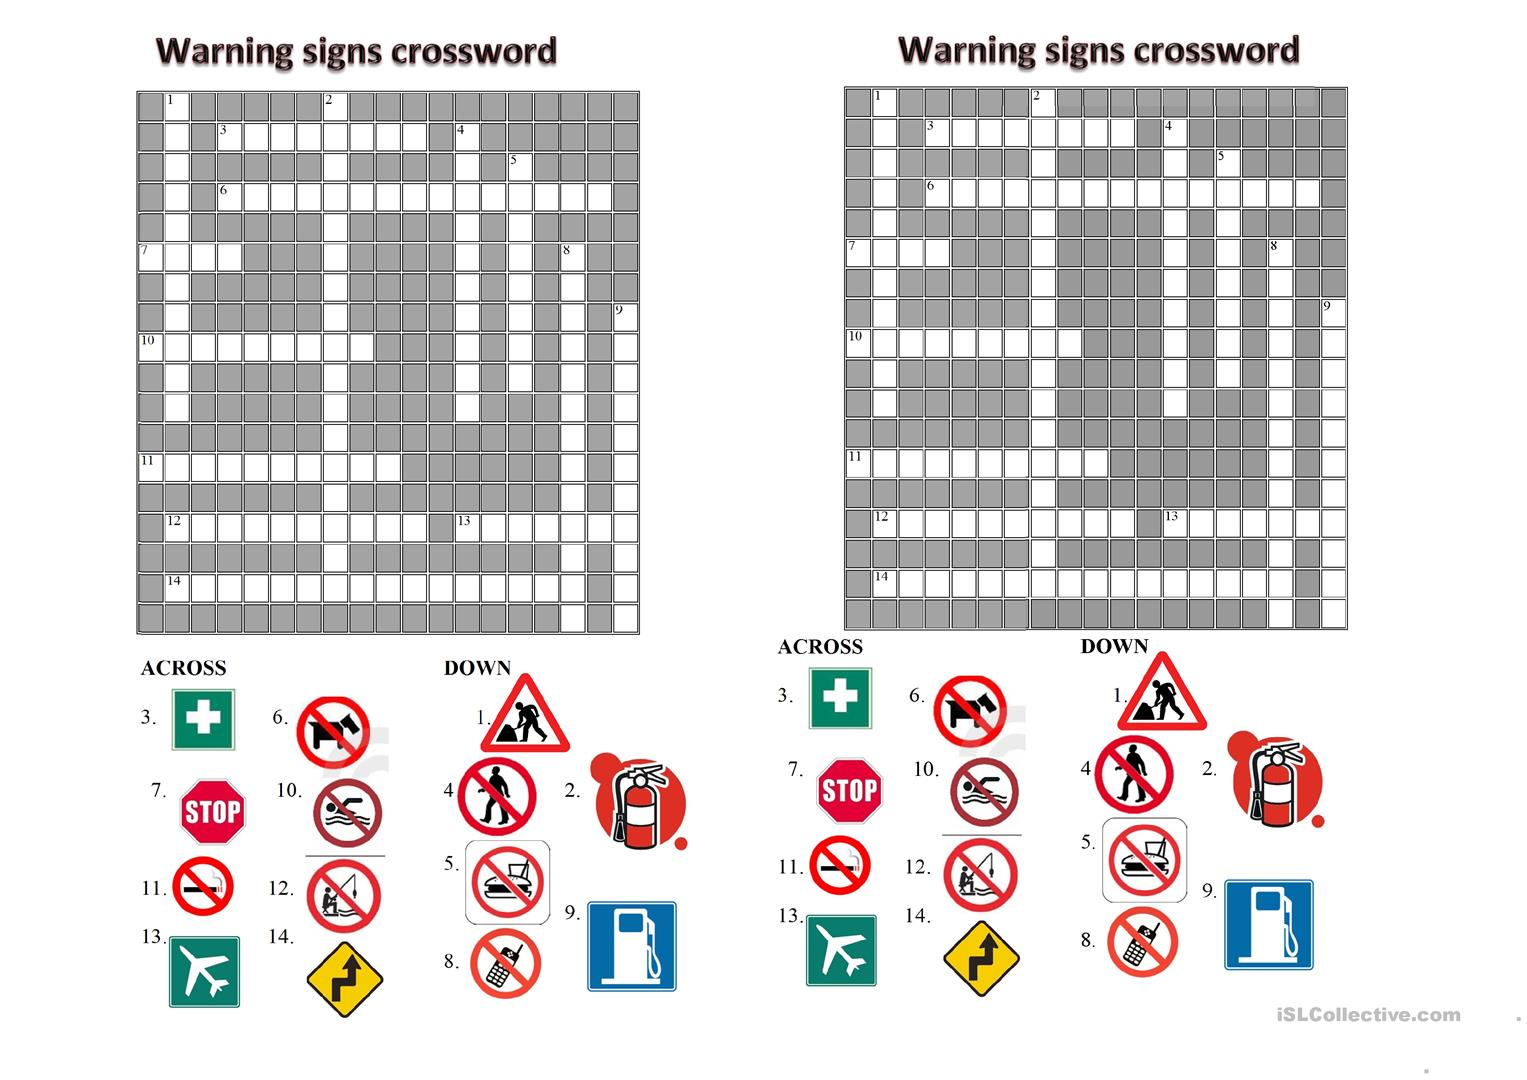 Warnings Crossword